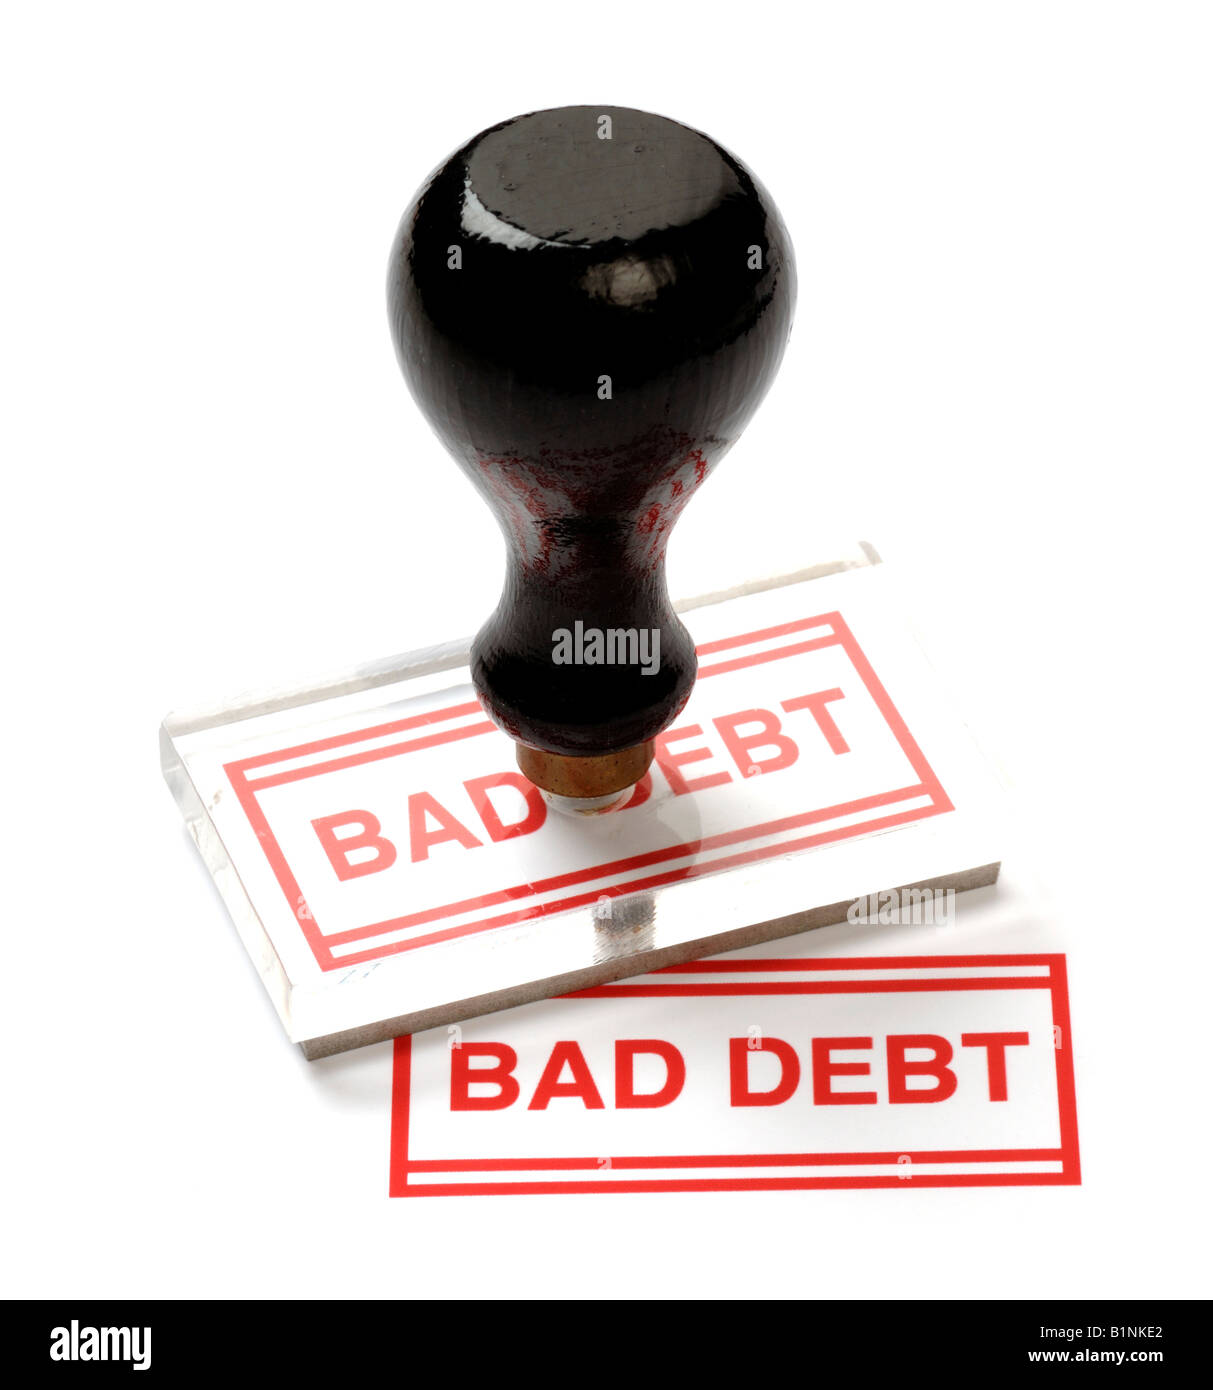 Bad debt office rubber stamp - Stock Image